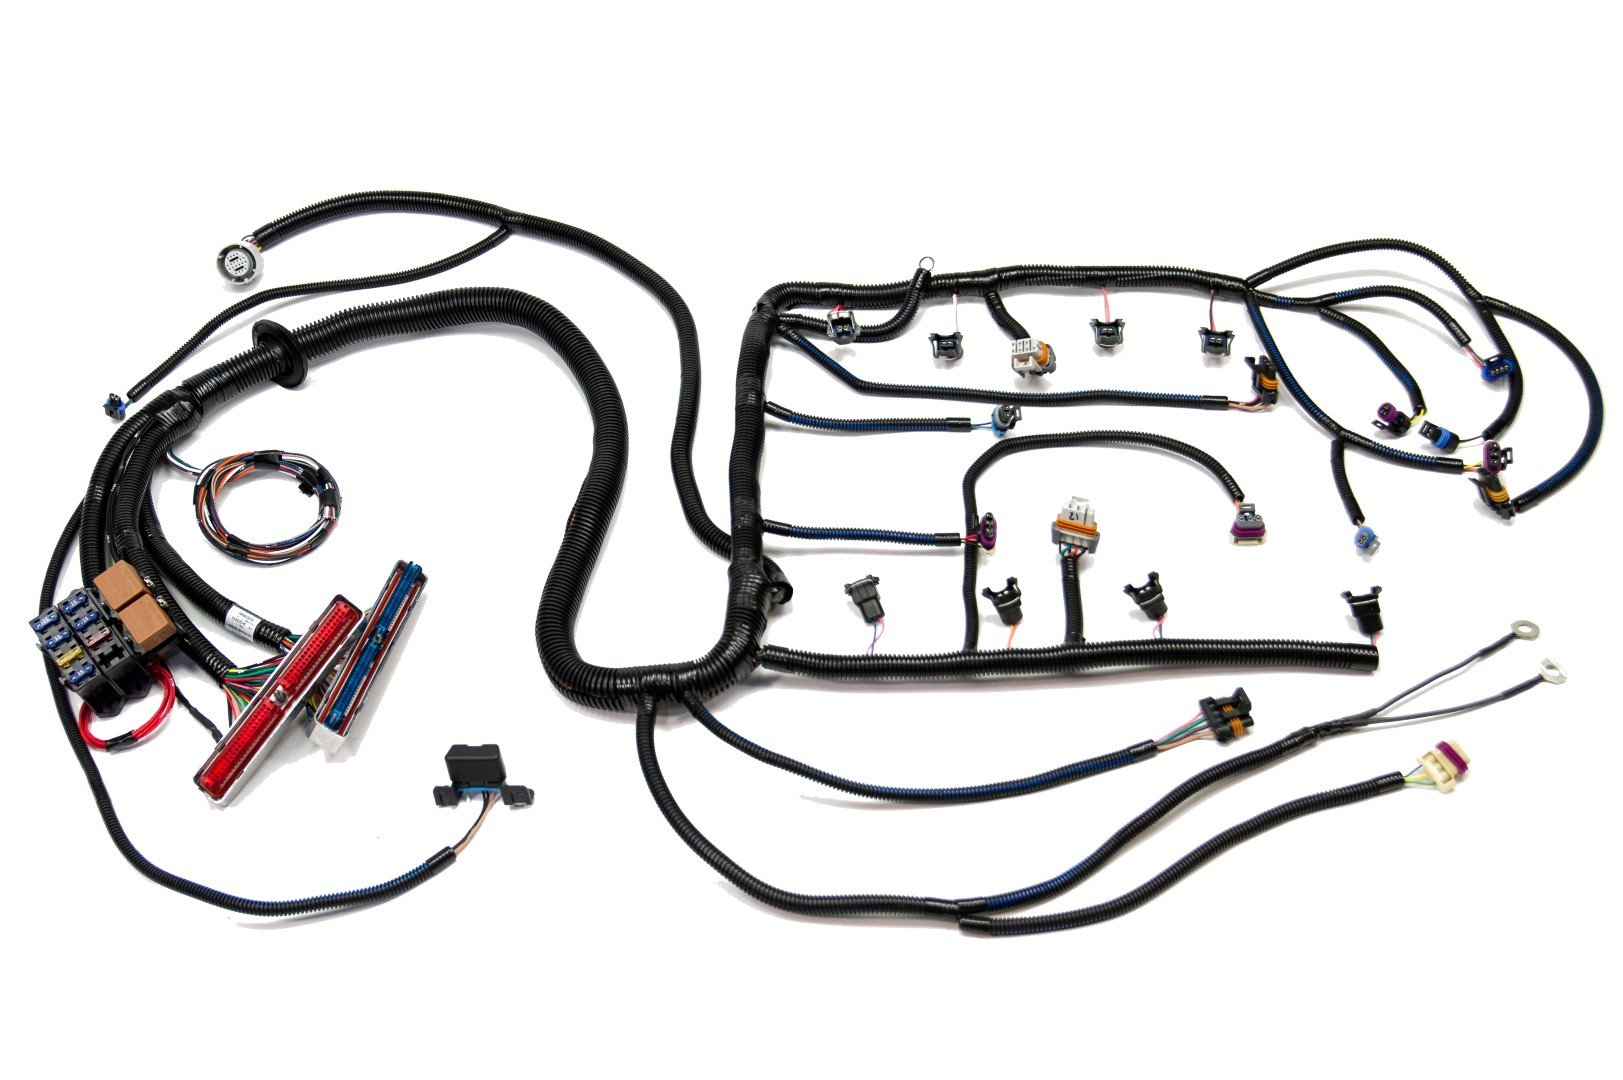 1997 - 2002 LS1 5.7L PSI STANDALONE WIRING HARNESS w/ 4L60E Trans  Chevy Vortec Wiring Harness Standalone on chevy battery terminal, chevy 1500 wireing harness color codes, chevy wiring connectors, chevy warning sticker, chevy speaker wiring, chevy speaker harness, chevy radiator cap, chevy fan motor, chevy power socket, chevy wiring schematics, chevy relay switch, chevy wheel cylinders, chevy clutch assembly, chevy wiring horn, chevy abs unit, chevy alternator harness, chevy crossmember, chevy clutch line, chevy front fender, chevy rear diff,